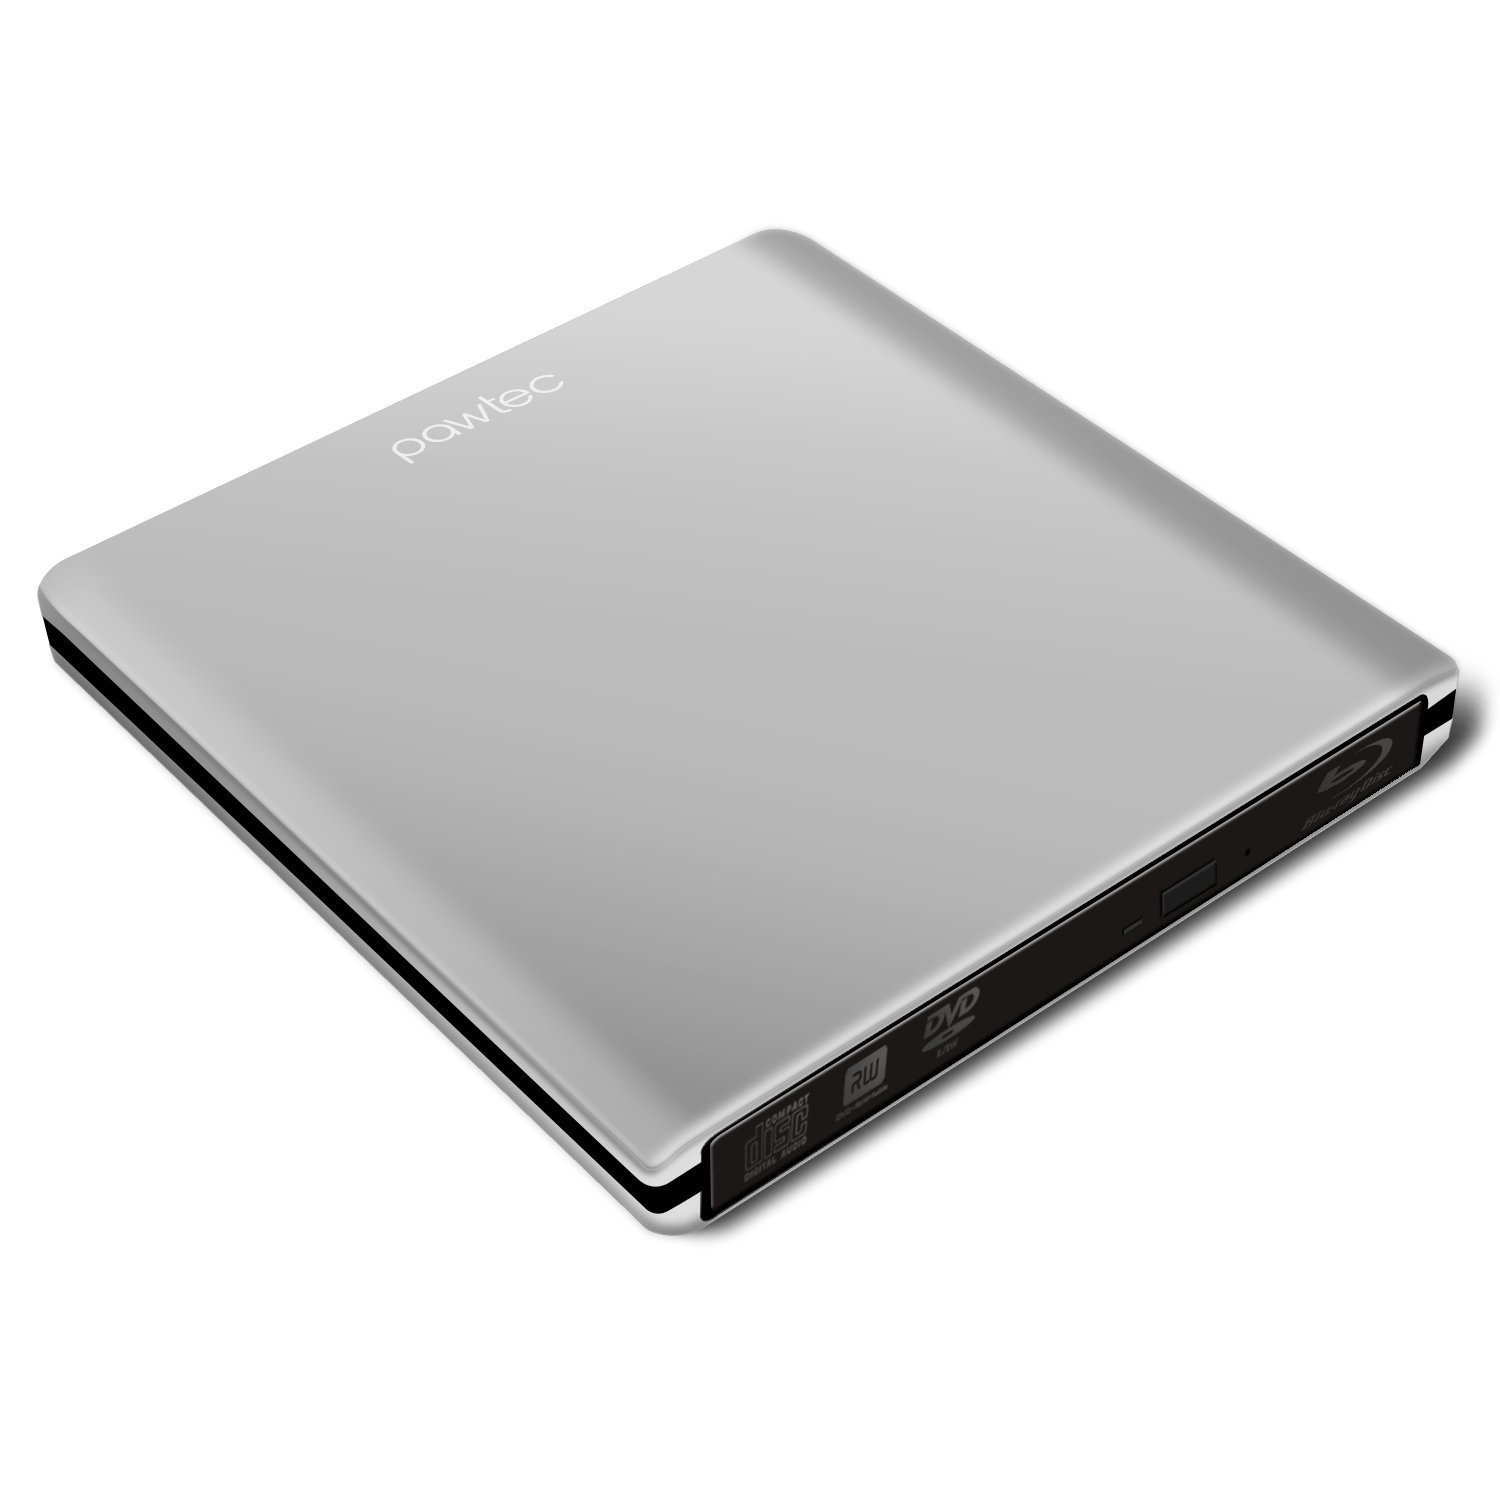 Pawtec External USB 3.0 Aluminum 6X BDXL 3D Blu-Ray Writer / Burner for PC Windows or Apple Mac iMac MacBook (Silver)